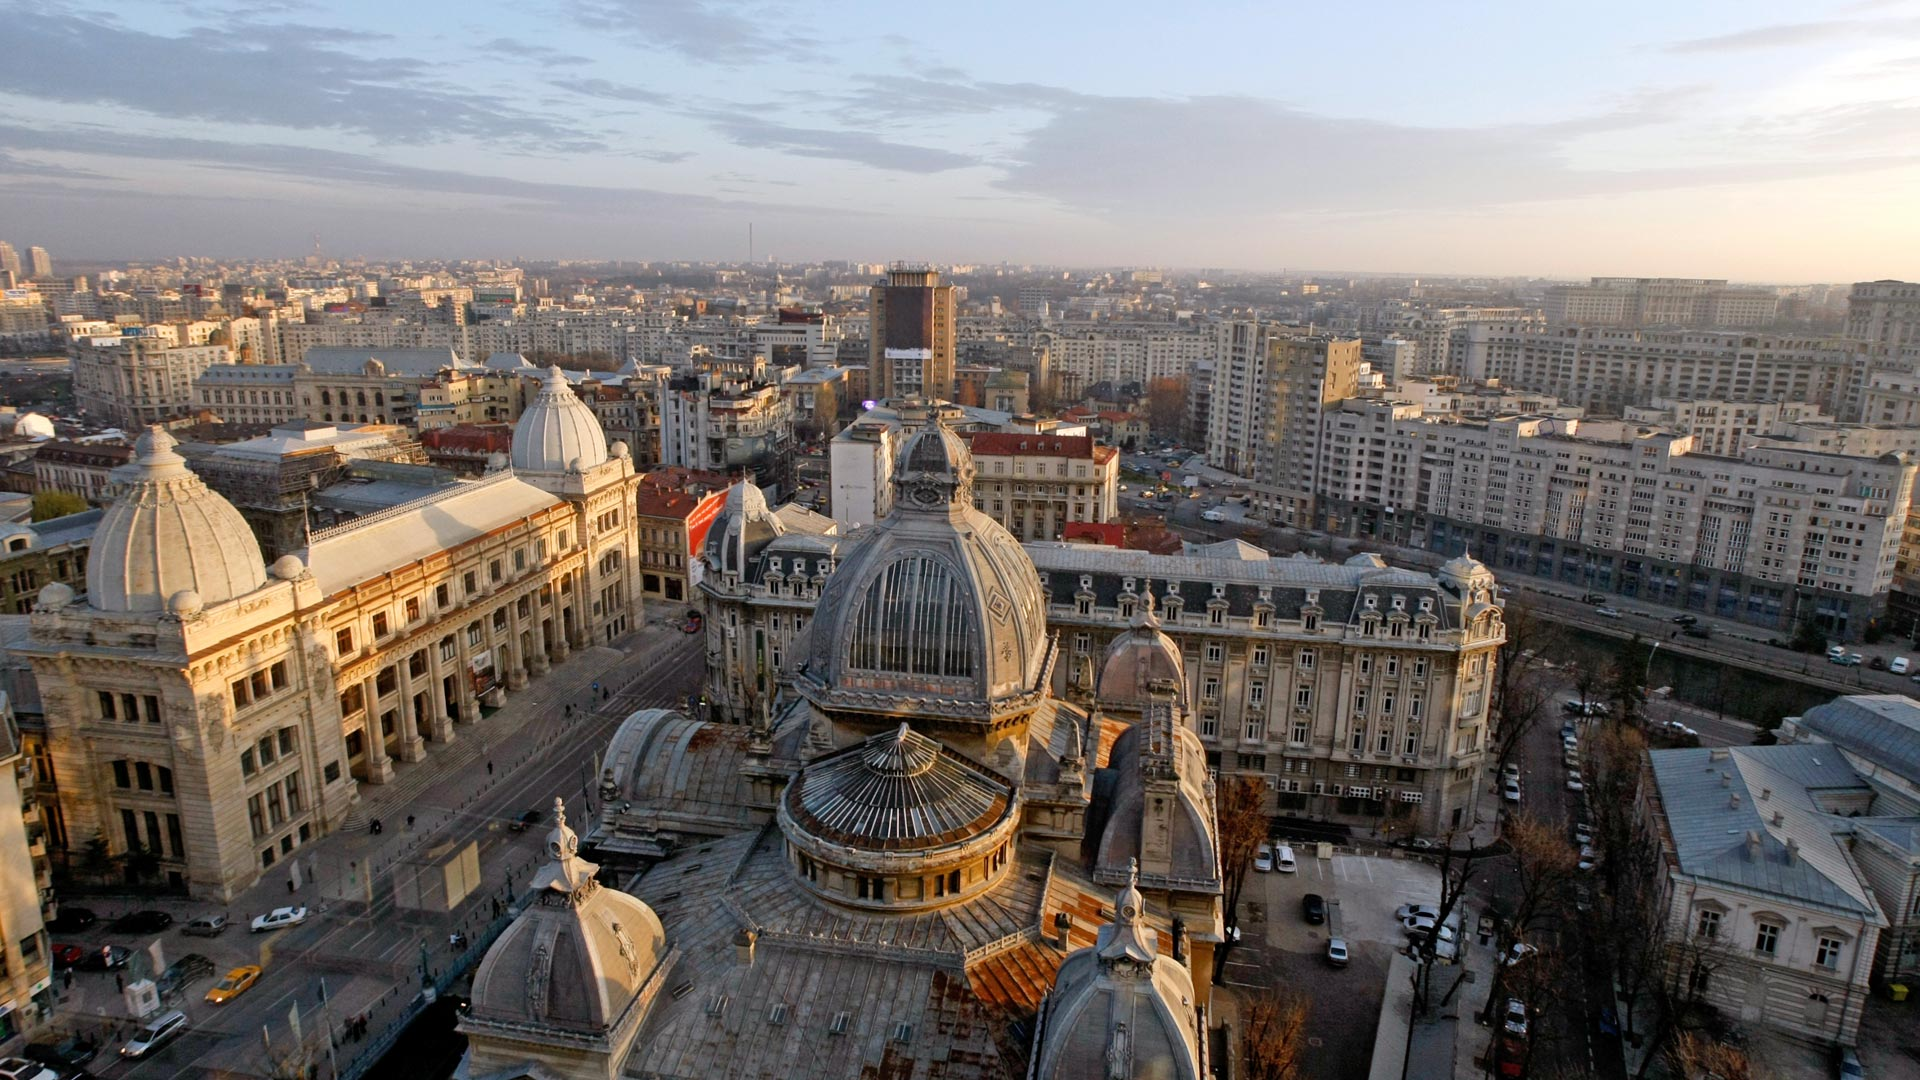 Bucharest Download this image